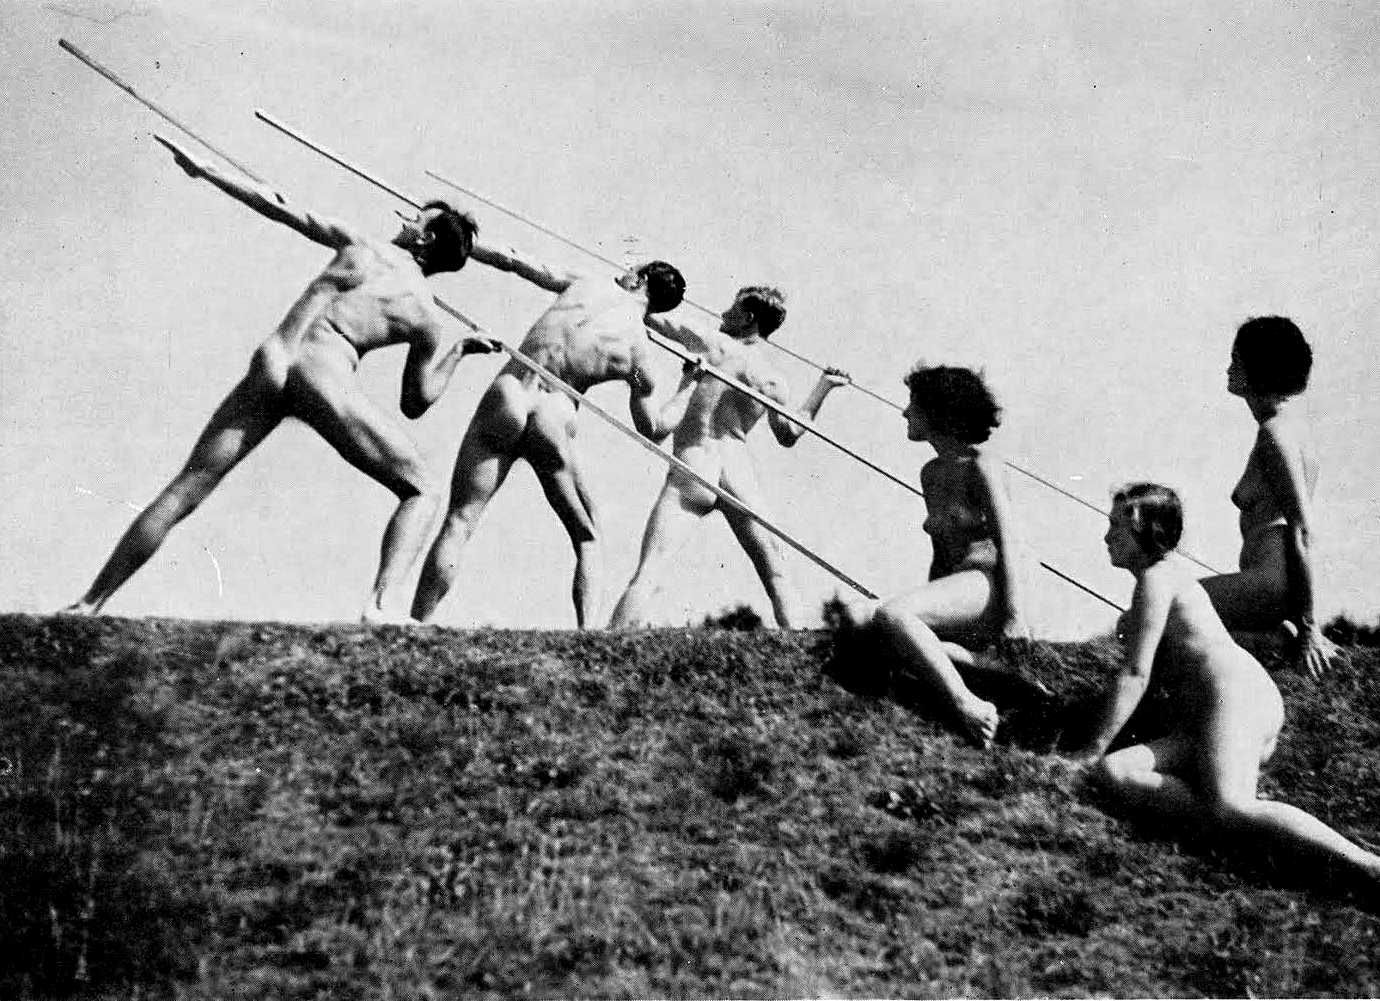 Three nude men pose to throw javelins, while three nude women look on.